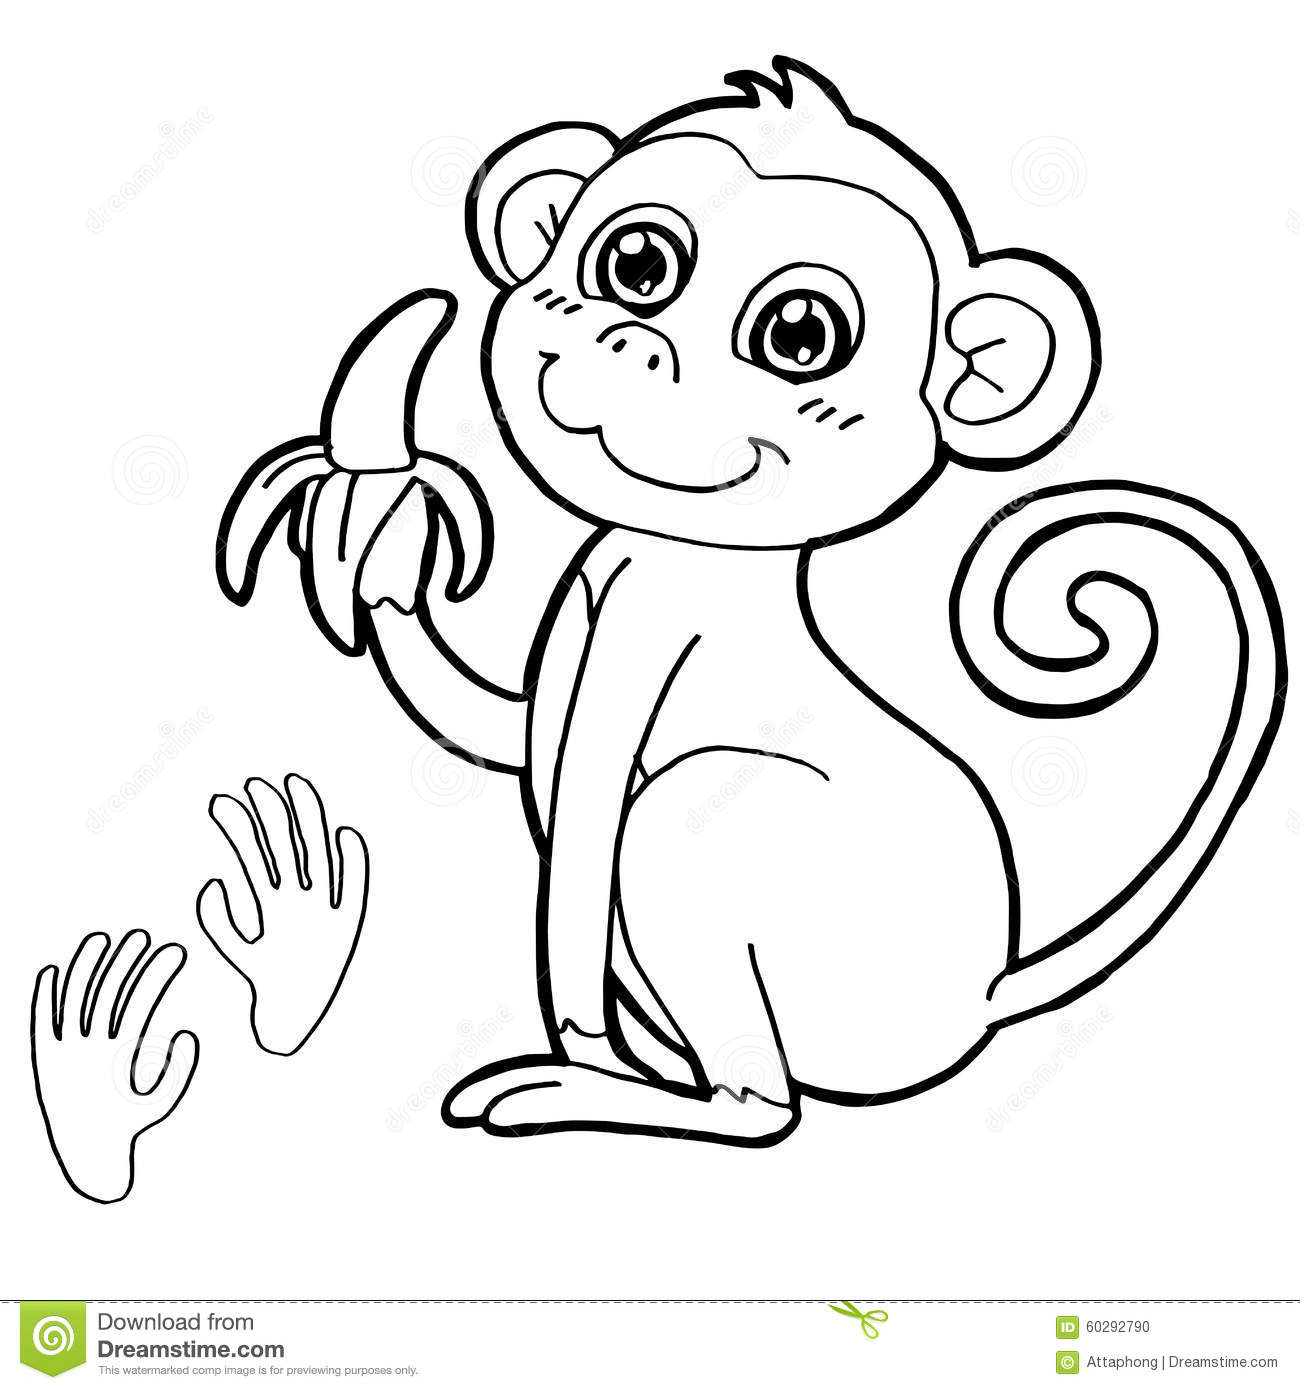 1300x1390 Unique Monkey Pictures To Print Best Ideas For You